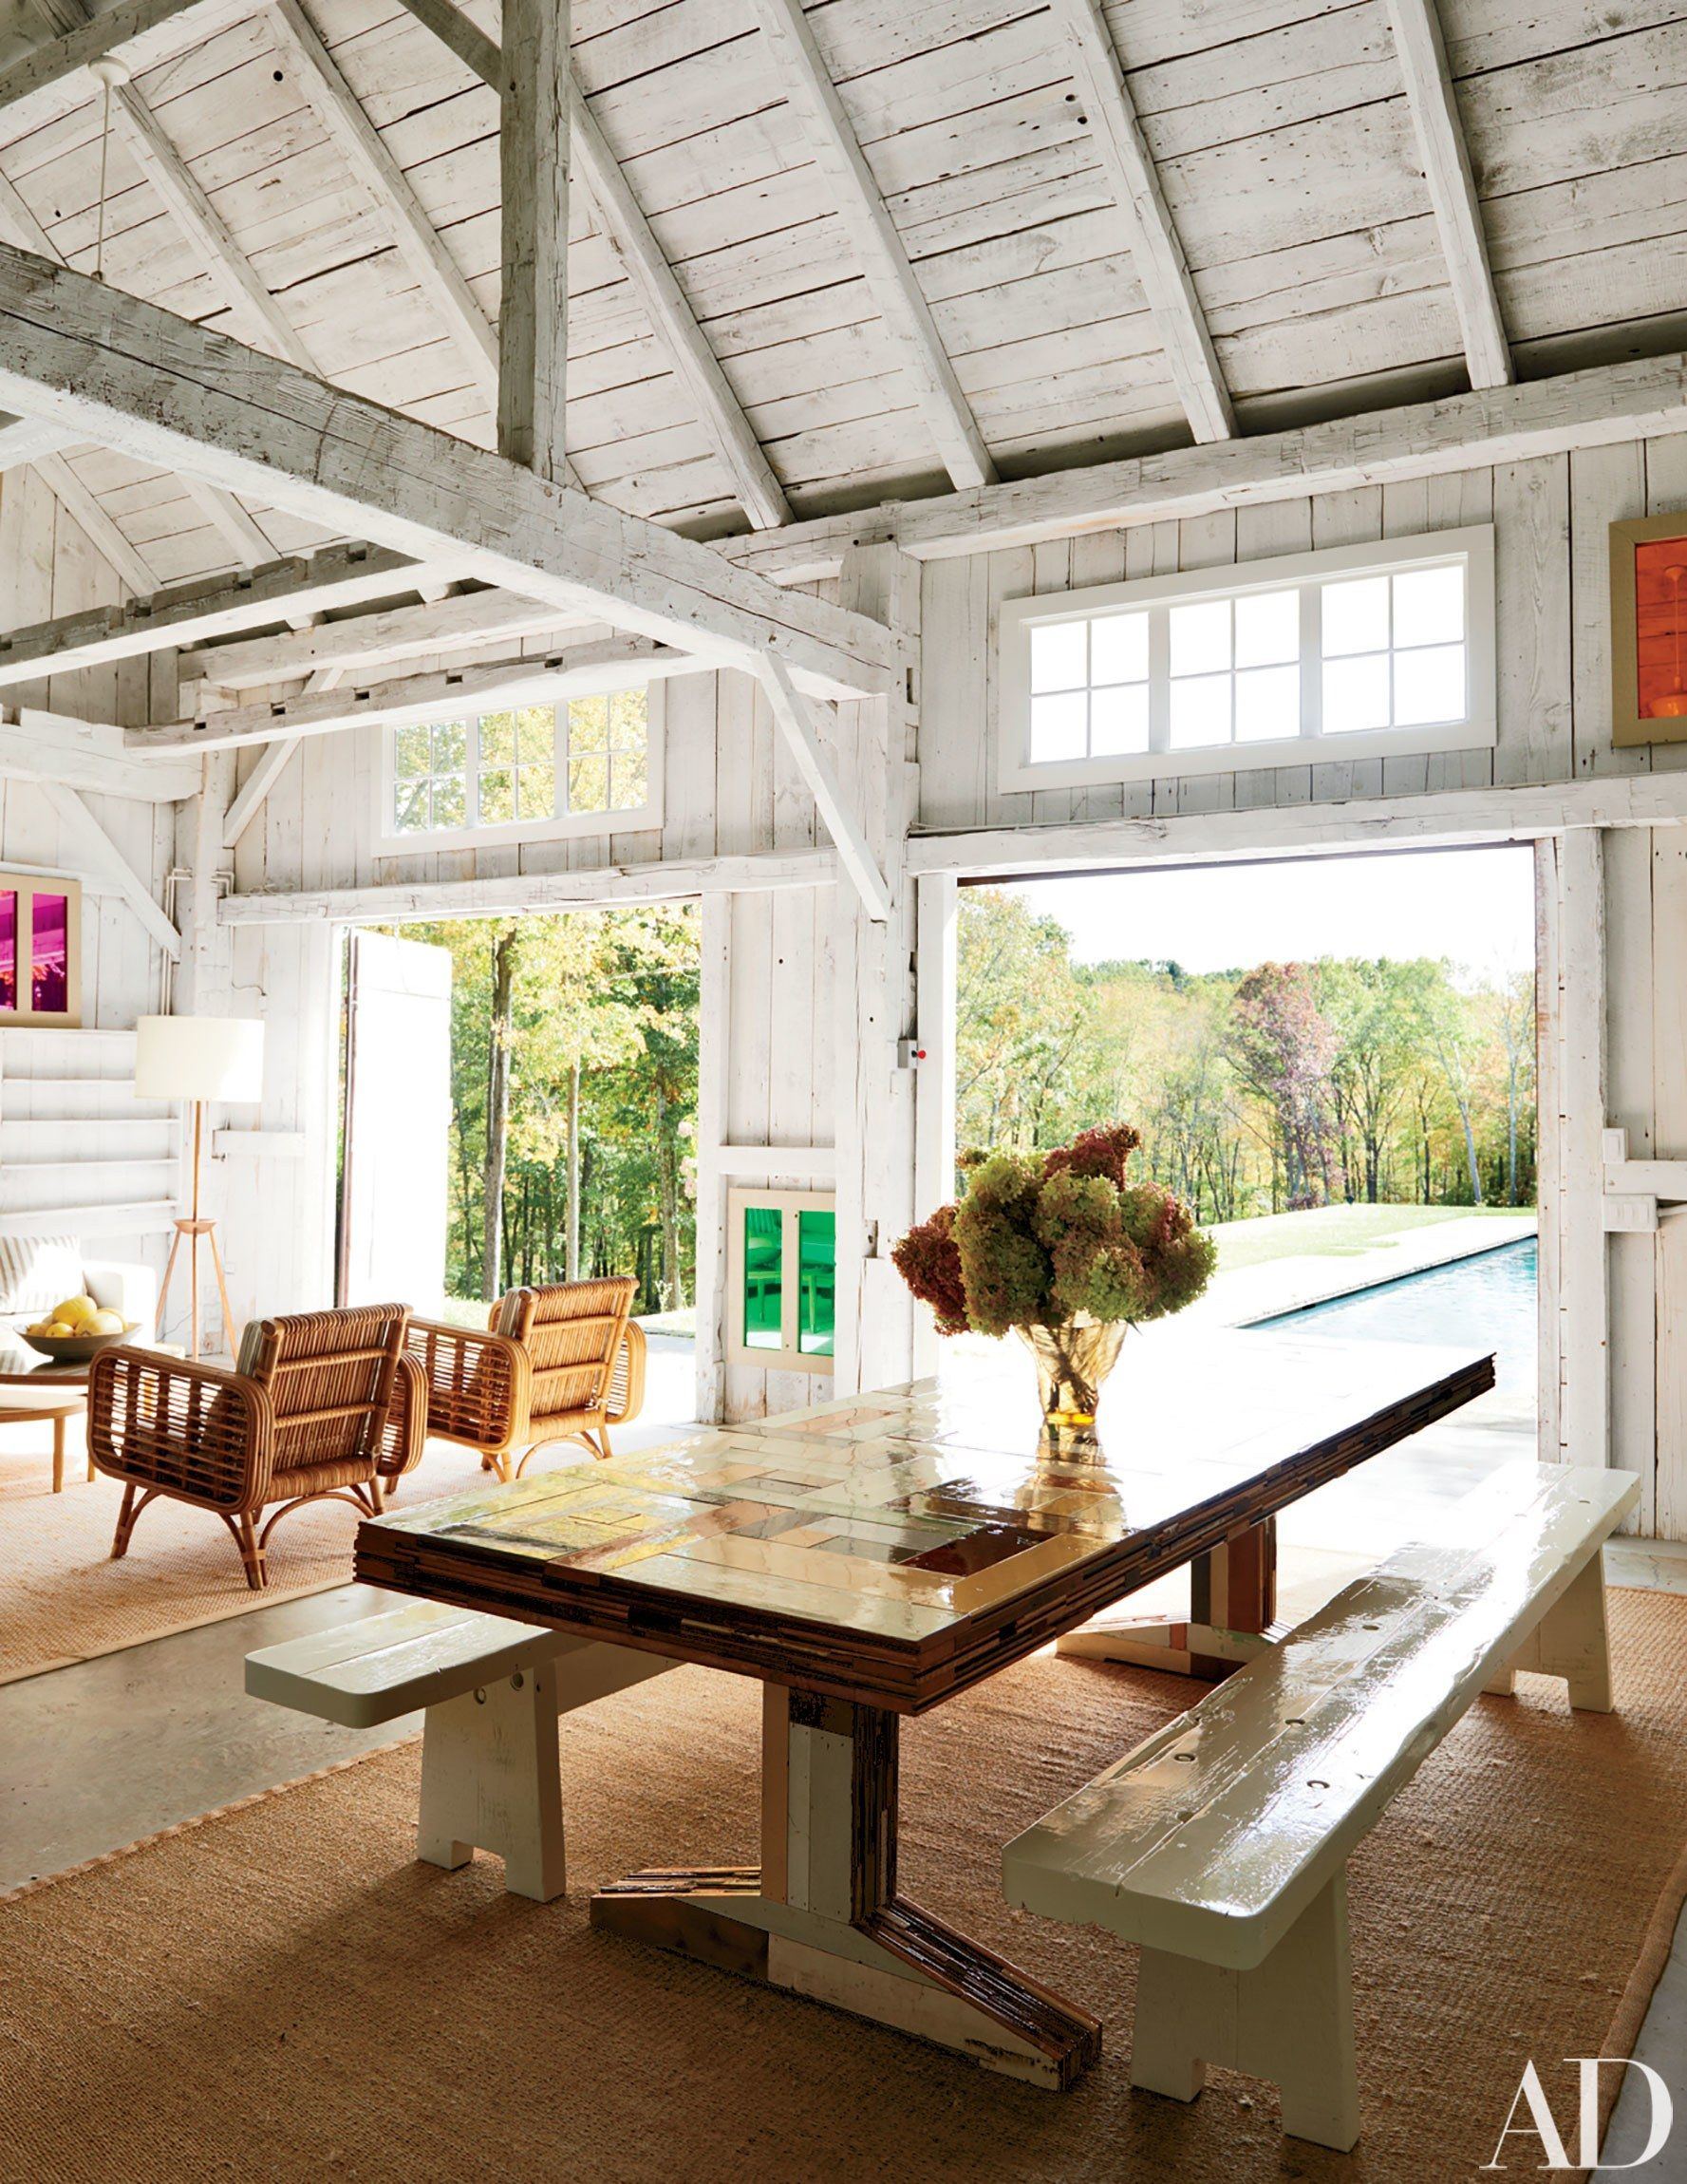 Pool house ideas - India Mahdavi Brings Her Signature Style to a Connecticut Country Home - Source Photo by Jason Schmidt via Architectural Digest - luxury pool houses - pool house designs - pool house interior ideas - rustic pool houses